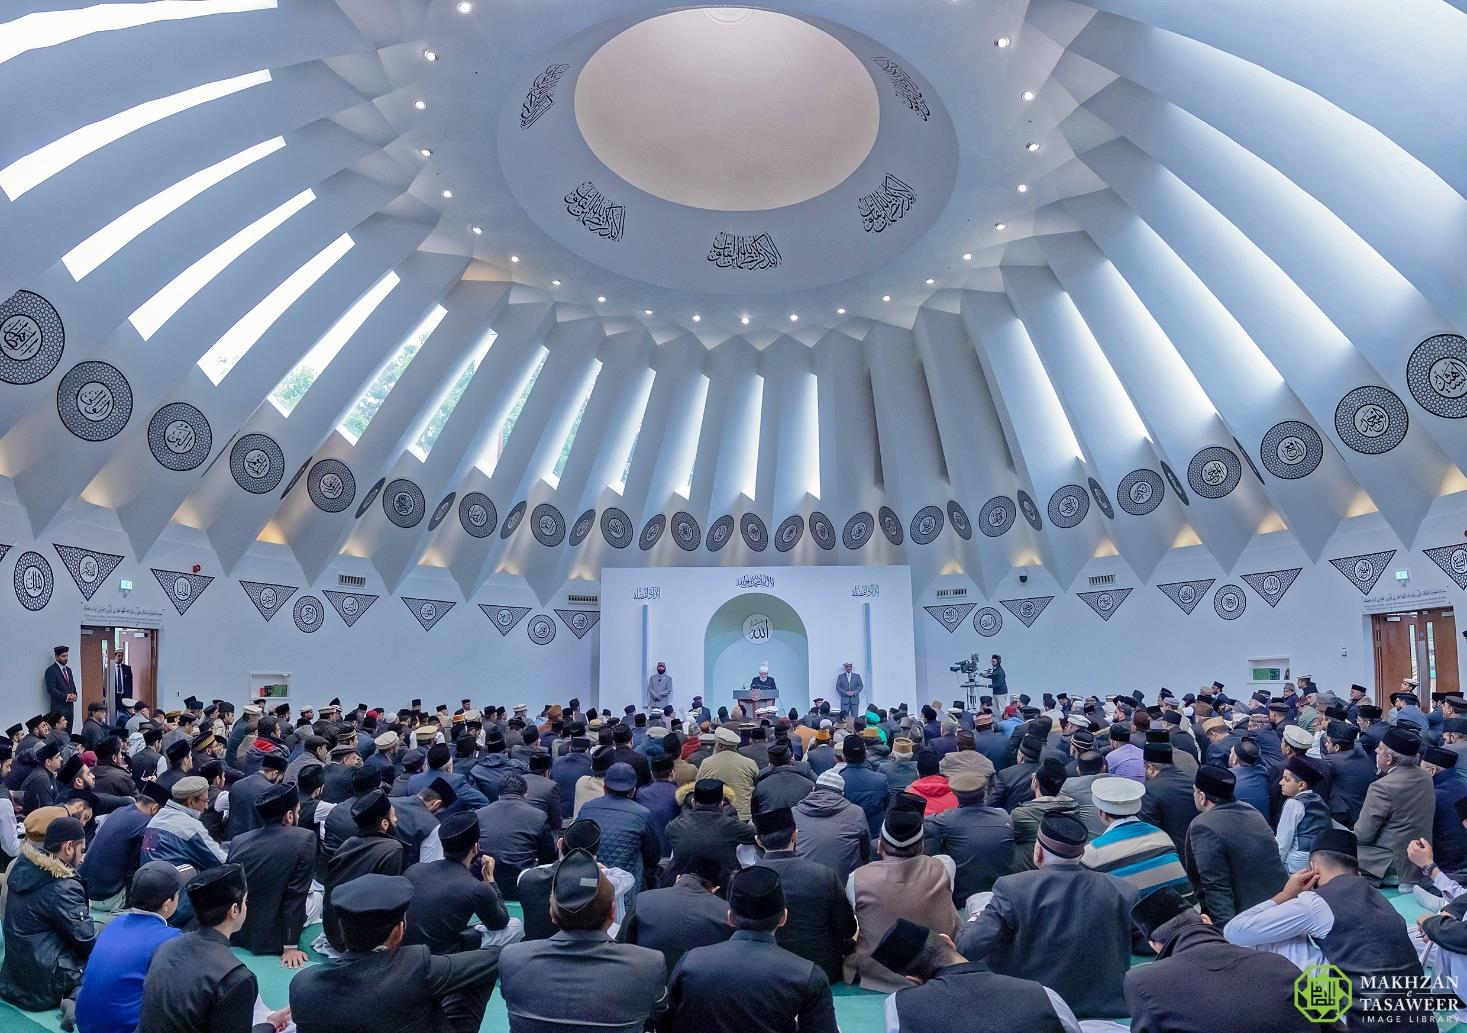 Hazrat Mirza Masroor Ahmad opens new Central Mosque in